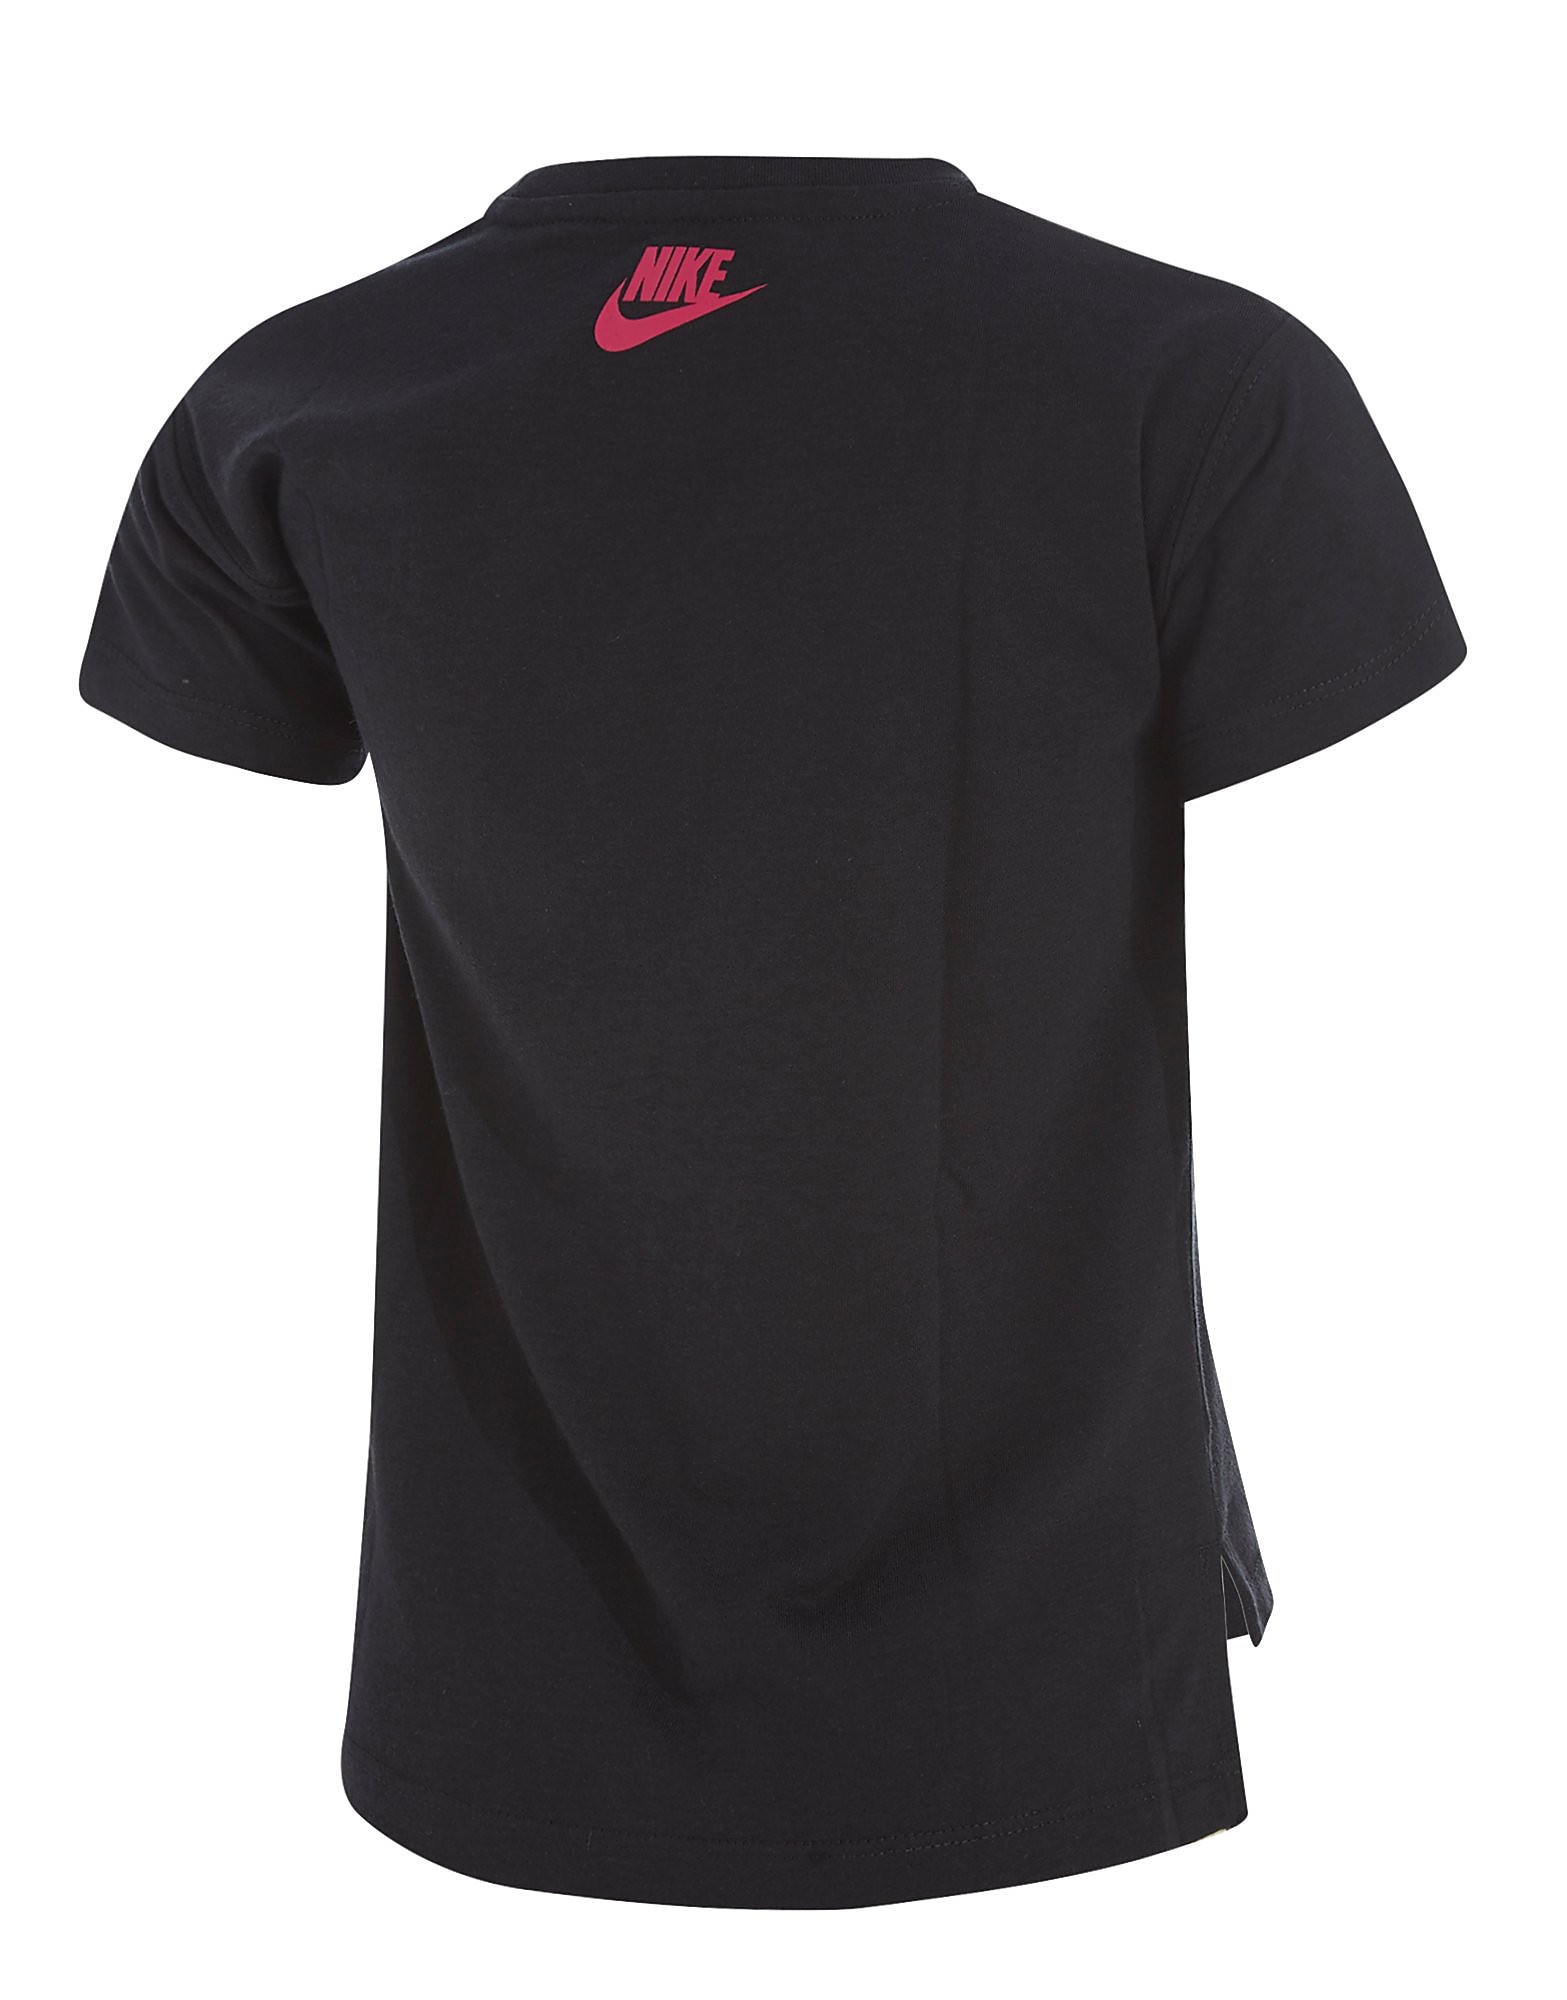 Nike camiseta Just Do It infantil